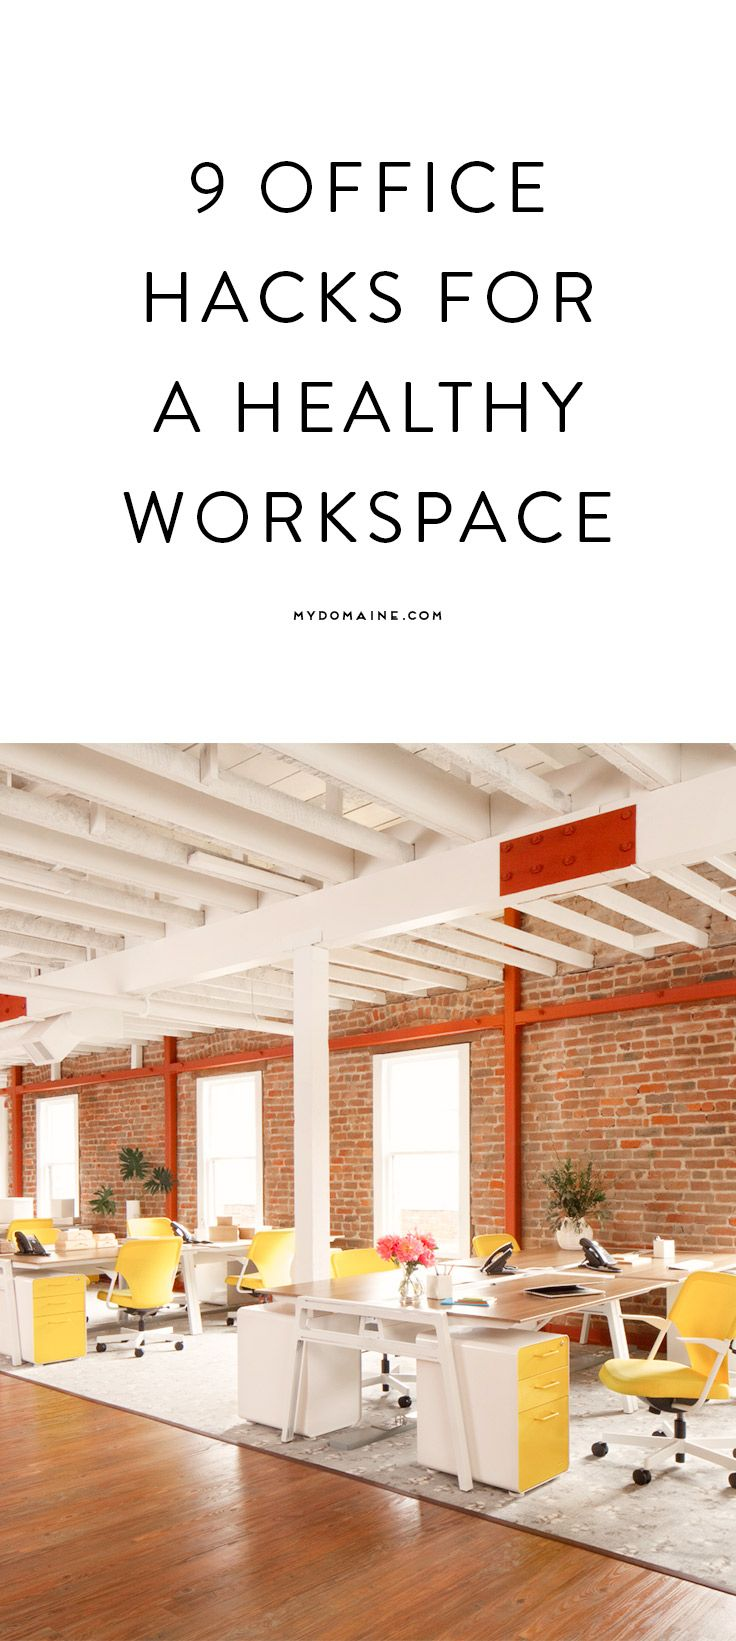 9 Office Hacks for a Healthy Workspace